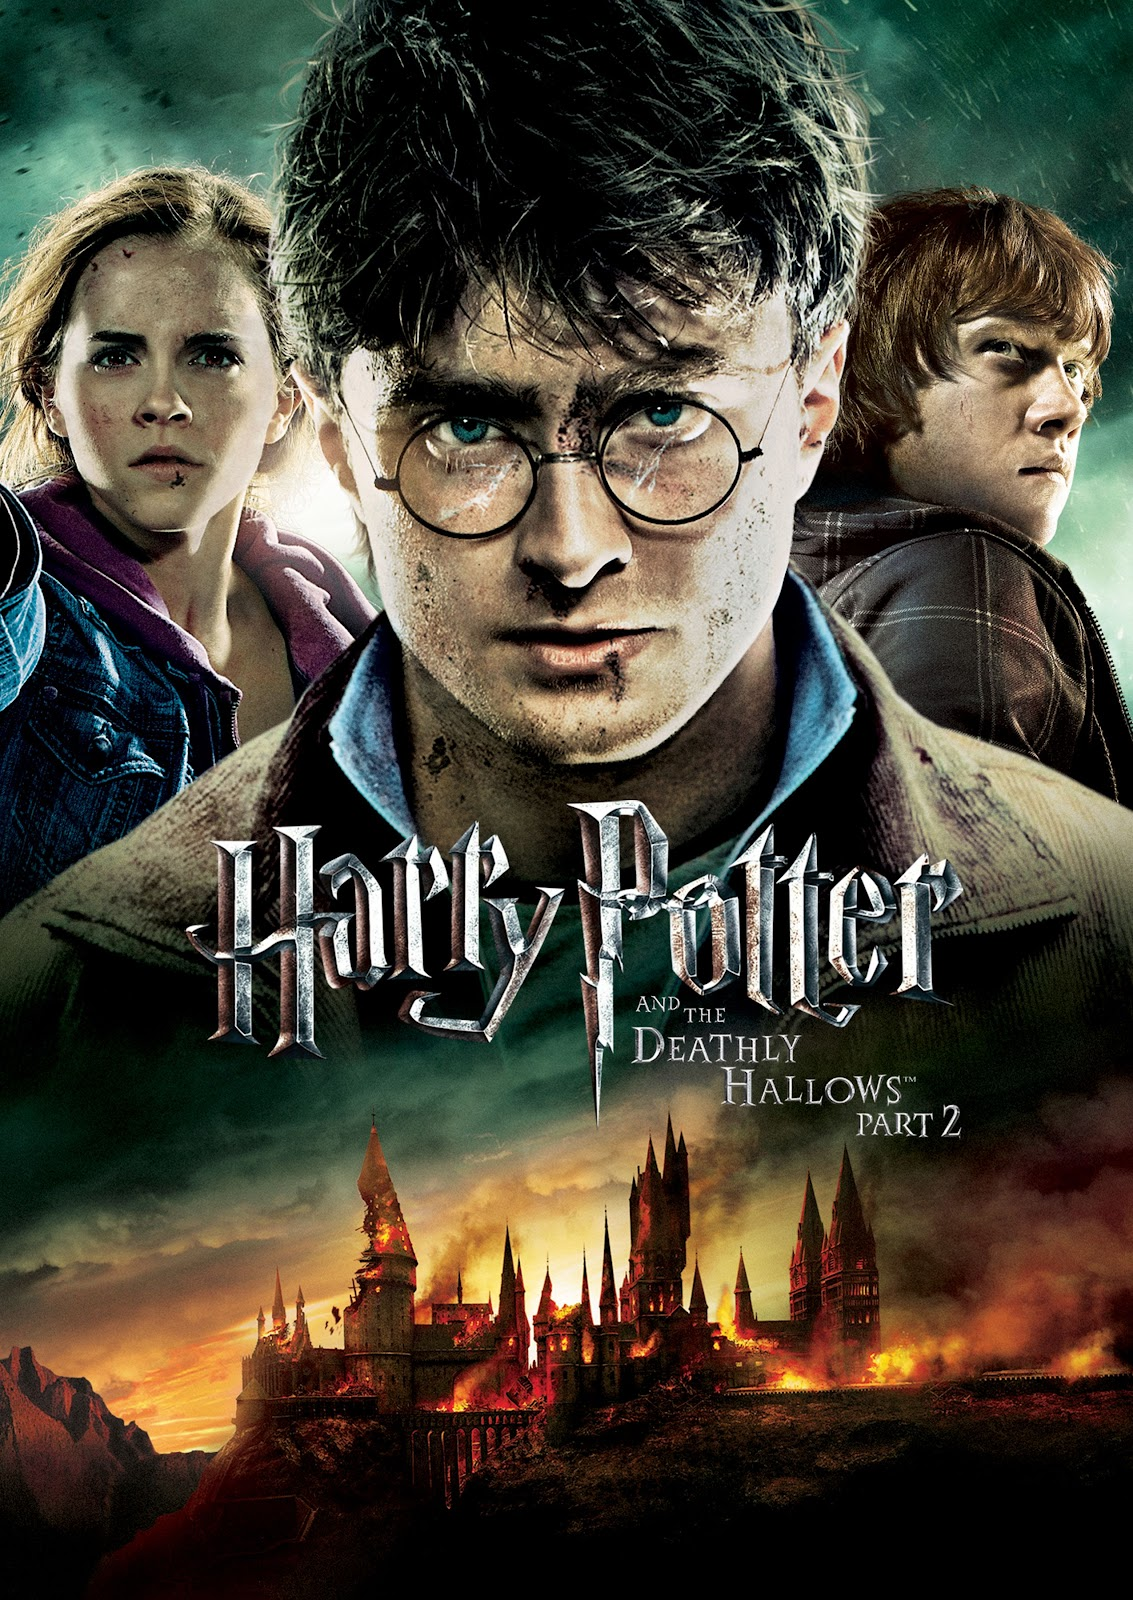 Harry Potter and the Deathly Hallows Part 2; Director David Yates